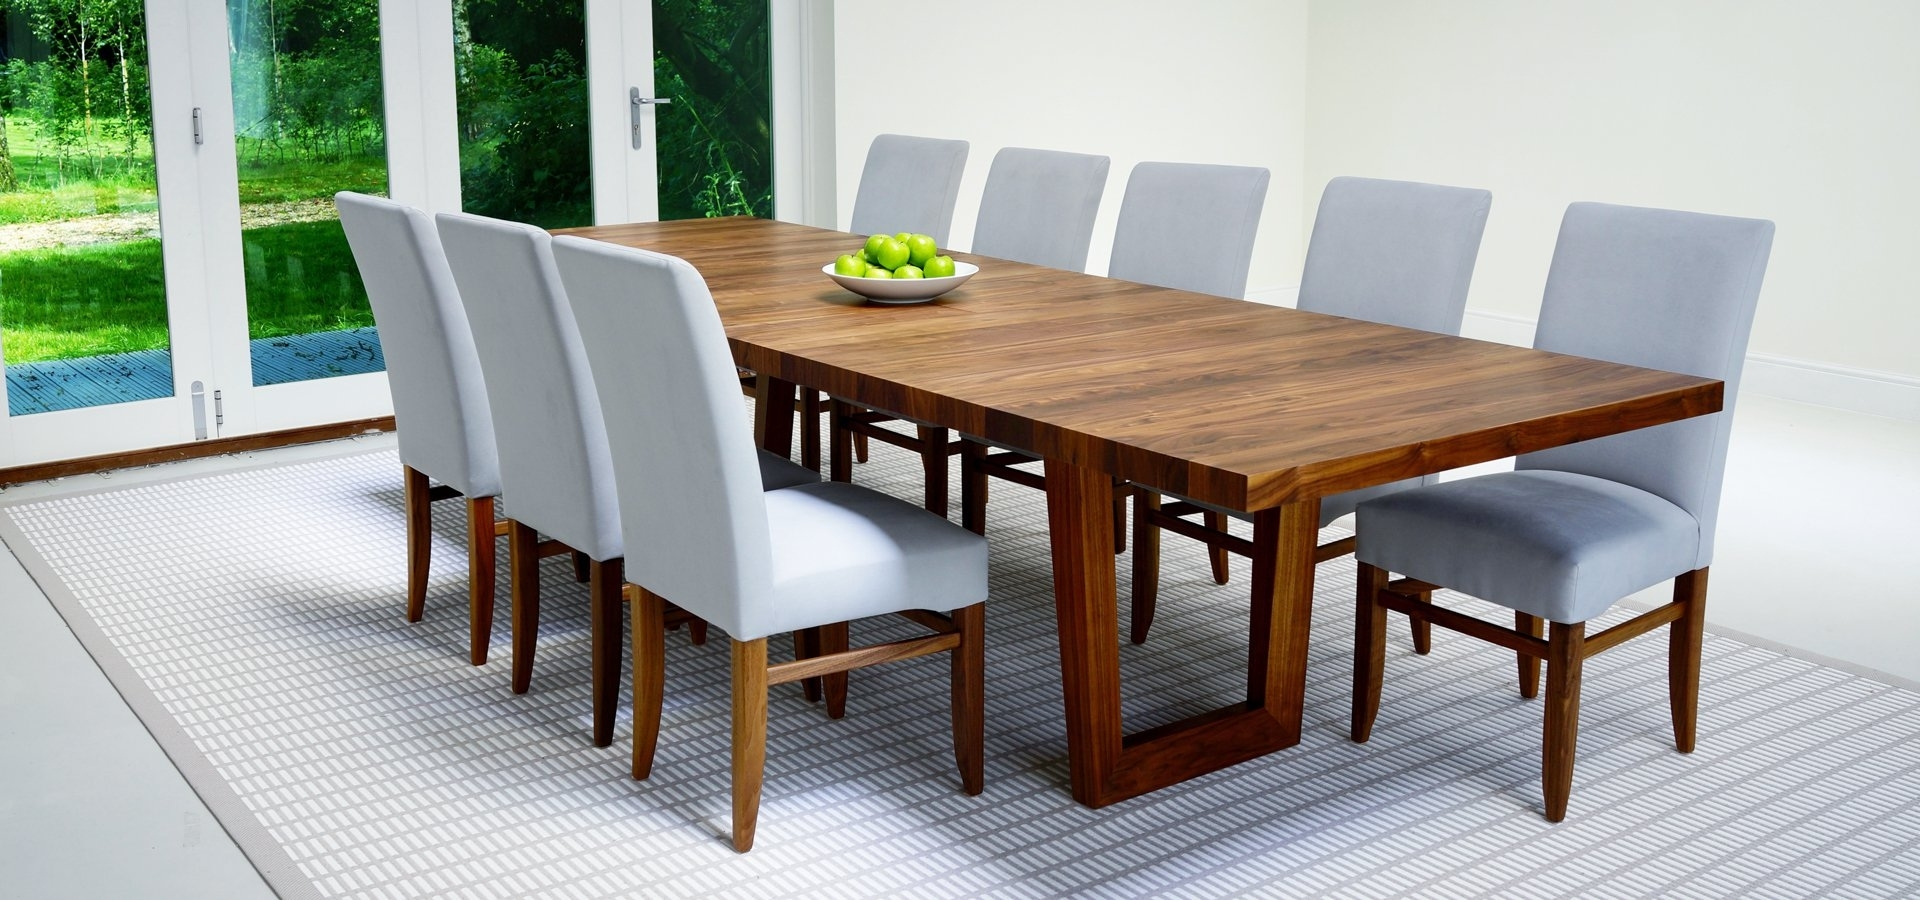 Most Up To Date Oak Dining Suites With Regard To Contemporary Dining Tables & Furnitureberrydesign (View 14 of 25)